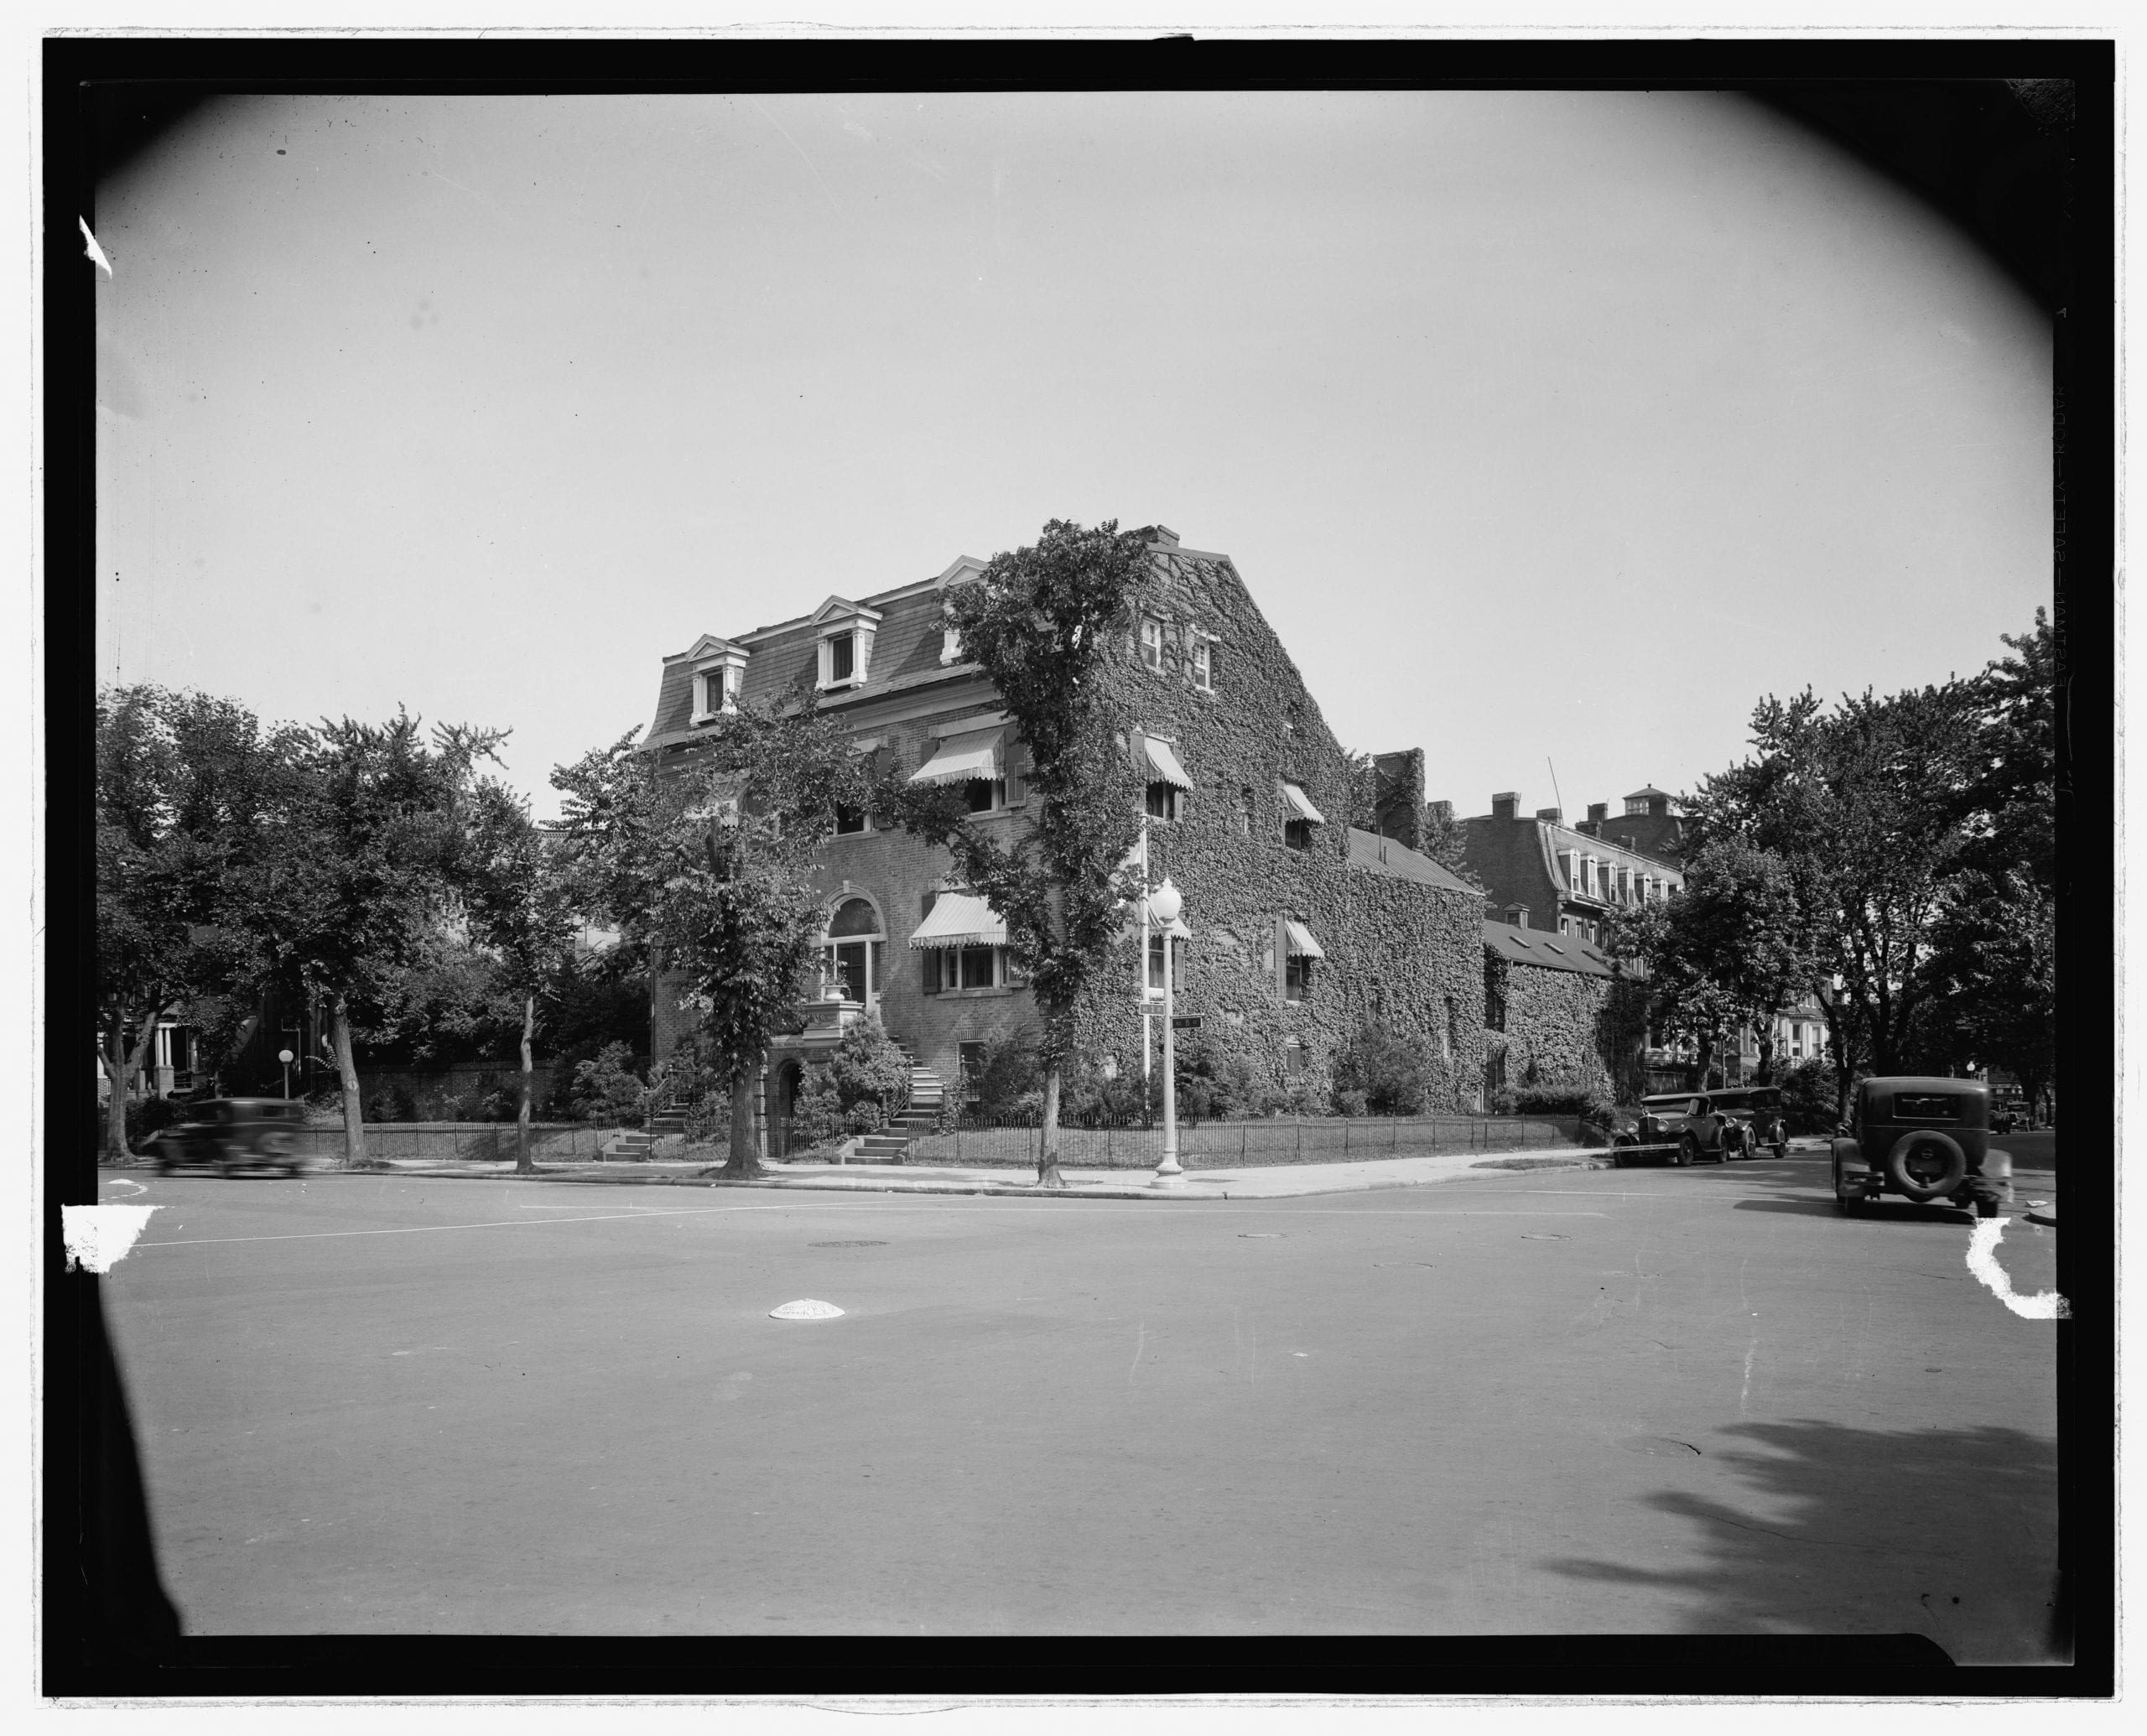 Photo shows Sewall-Belmont House, 144 Constitution Avenue, N.E., Washington, D.C.